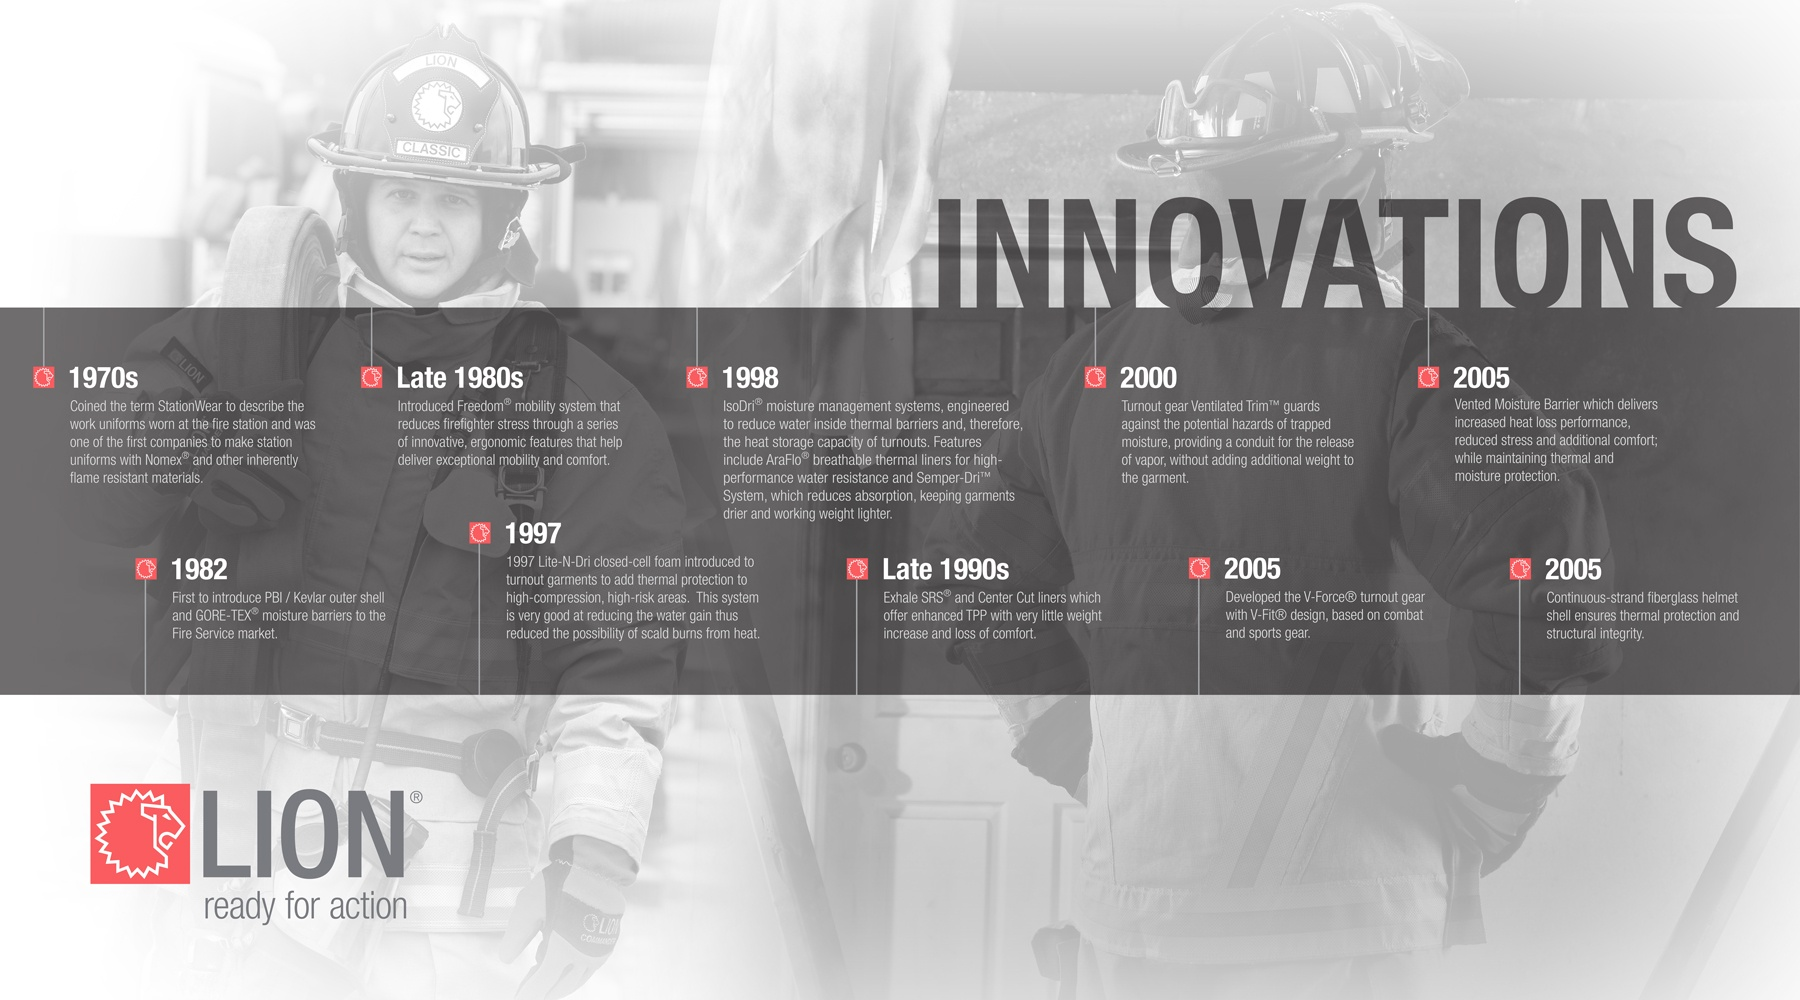 A timeline design of innovations from LION